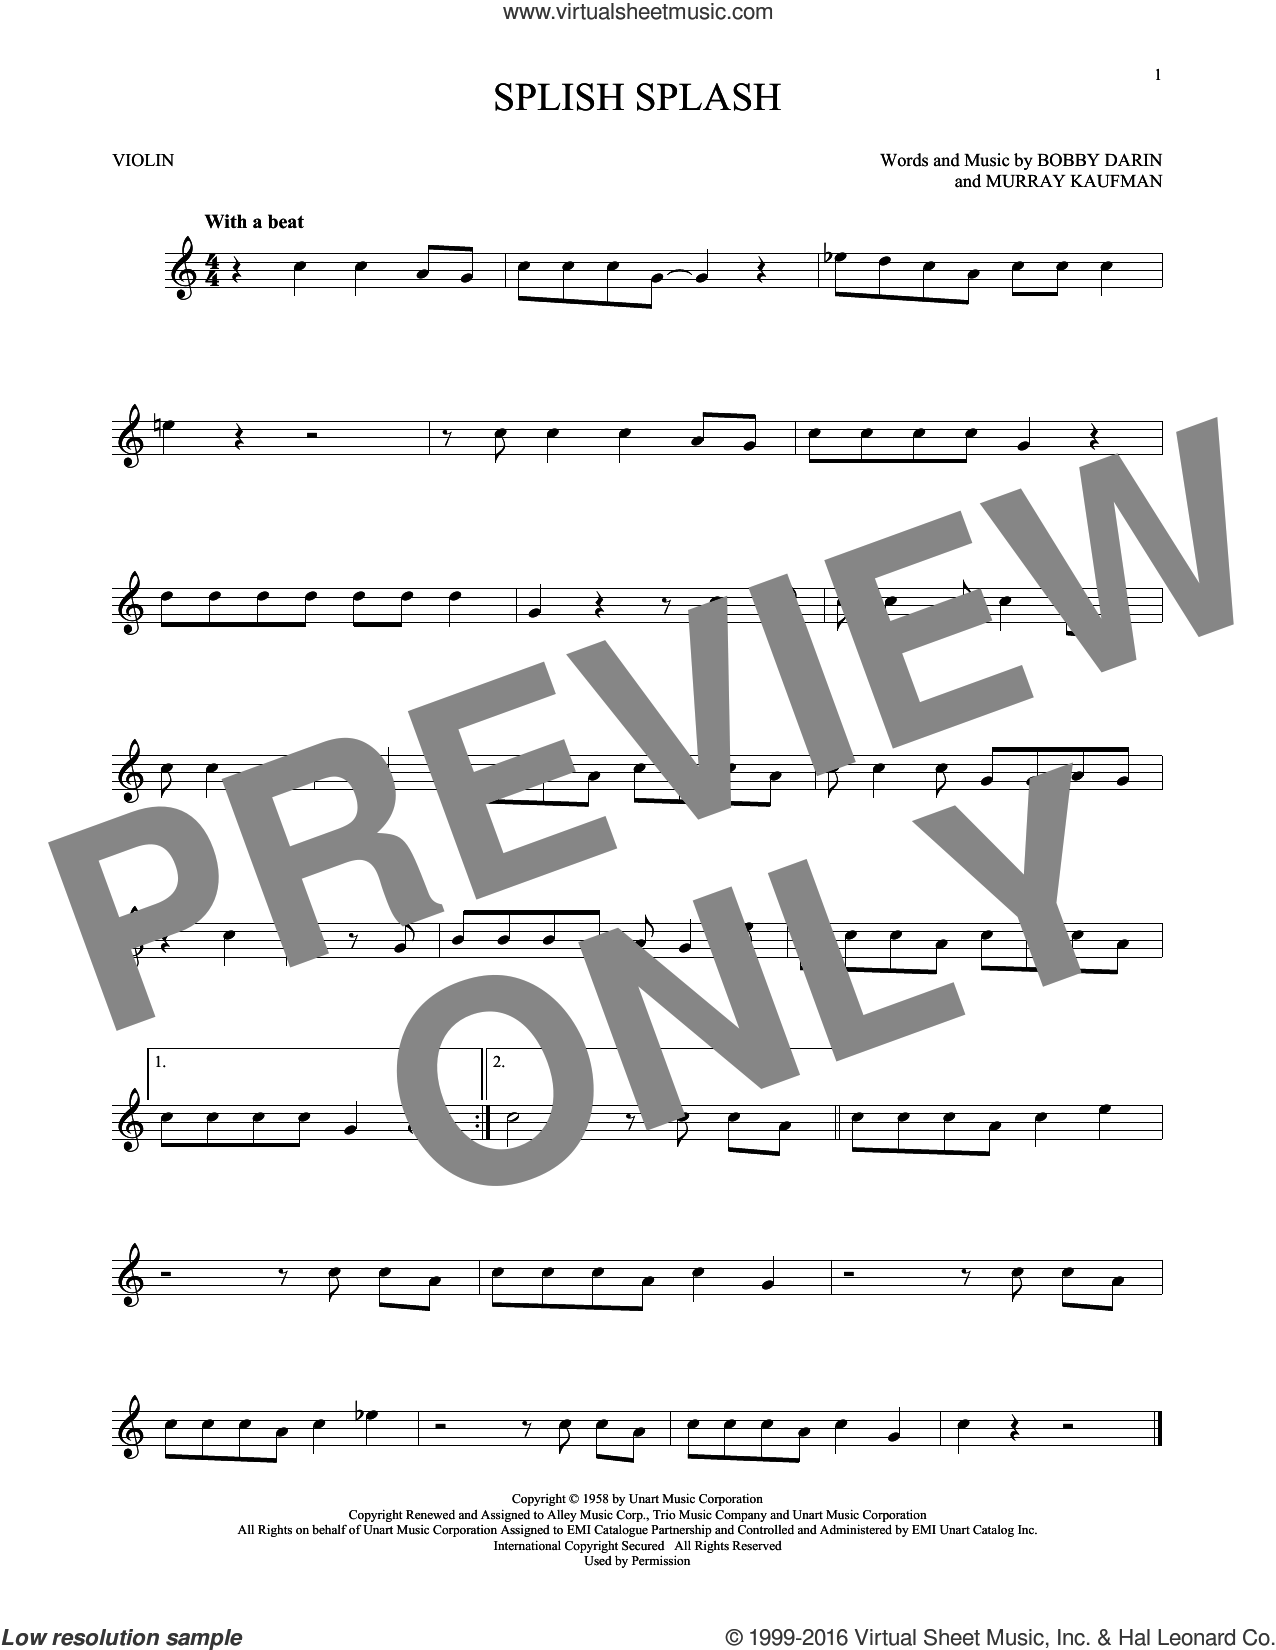 Splish Splash sheet music for violin solo by Bobby Darin and Murray Kaufman, intermediate